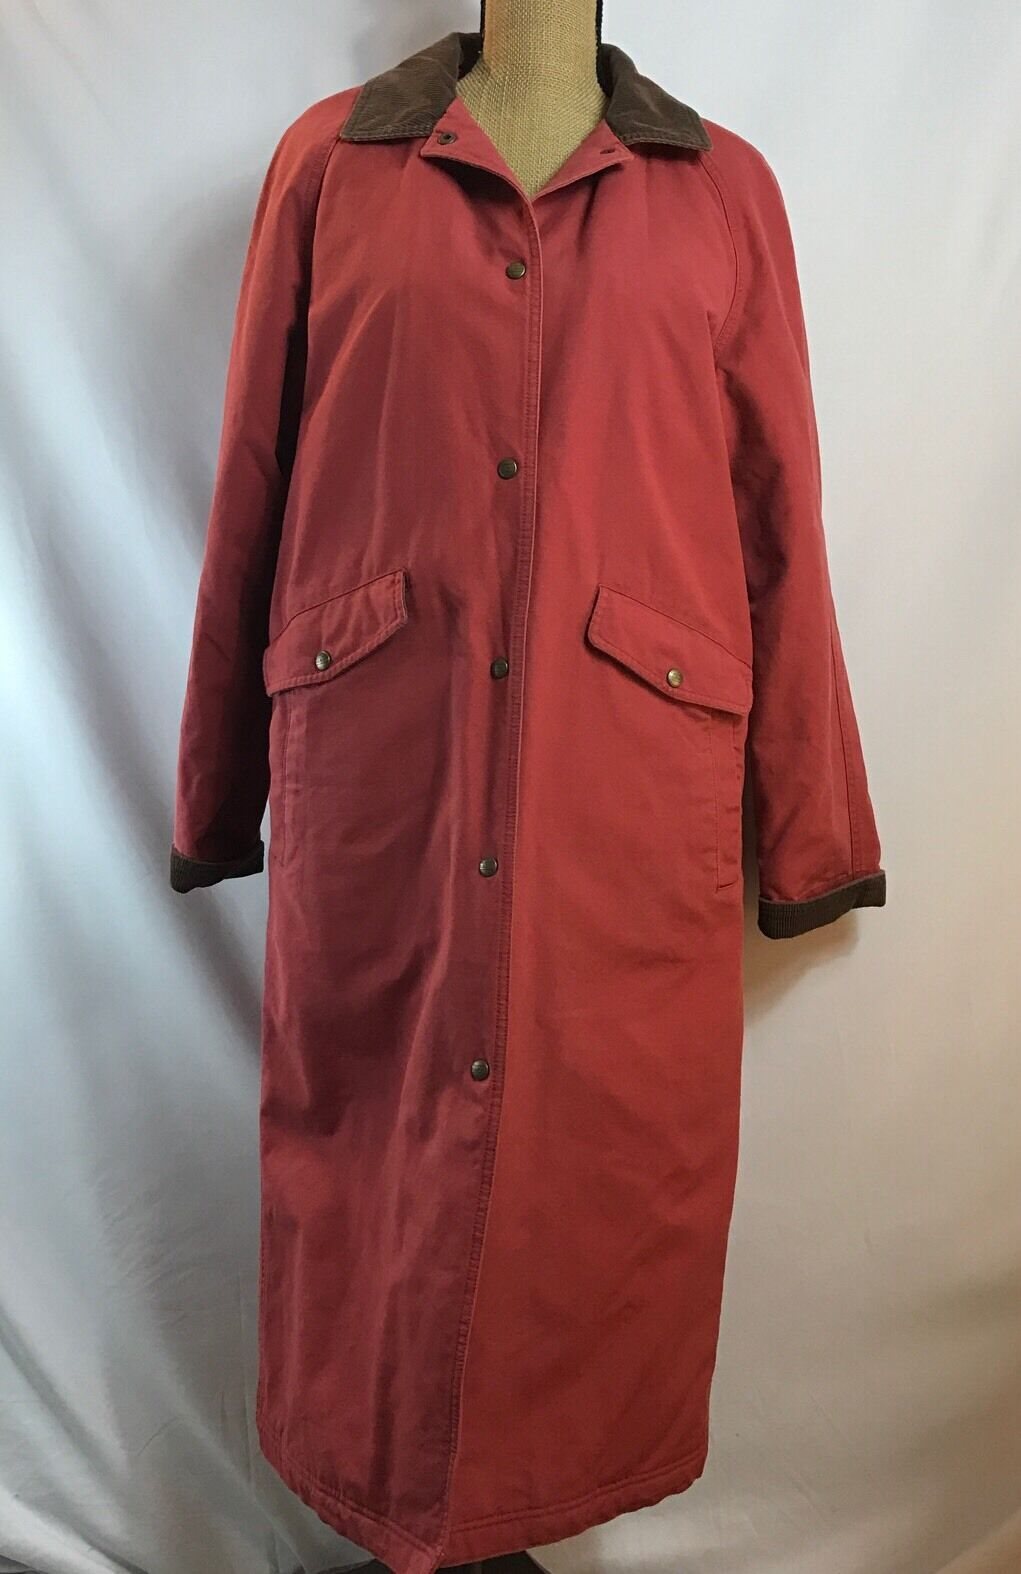 LL Bean Women's Small Reg 100% Cotton Quilted Indian Blanket Dusty pink Duster